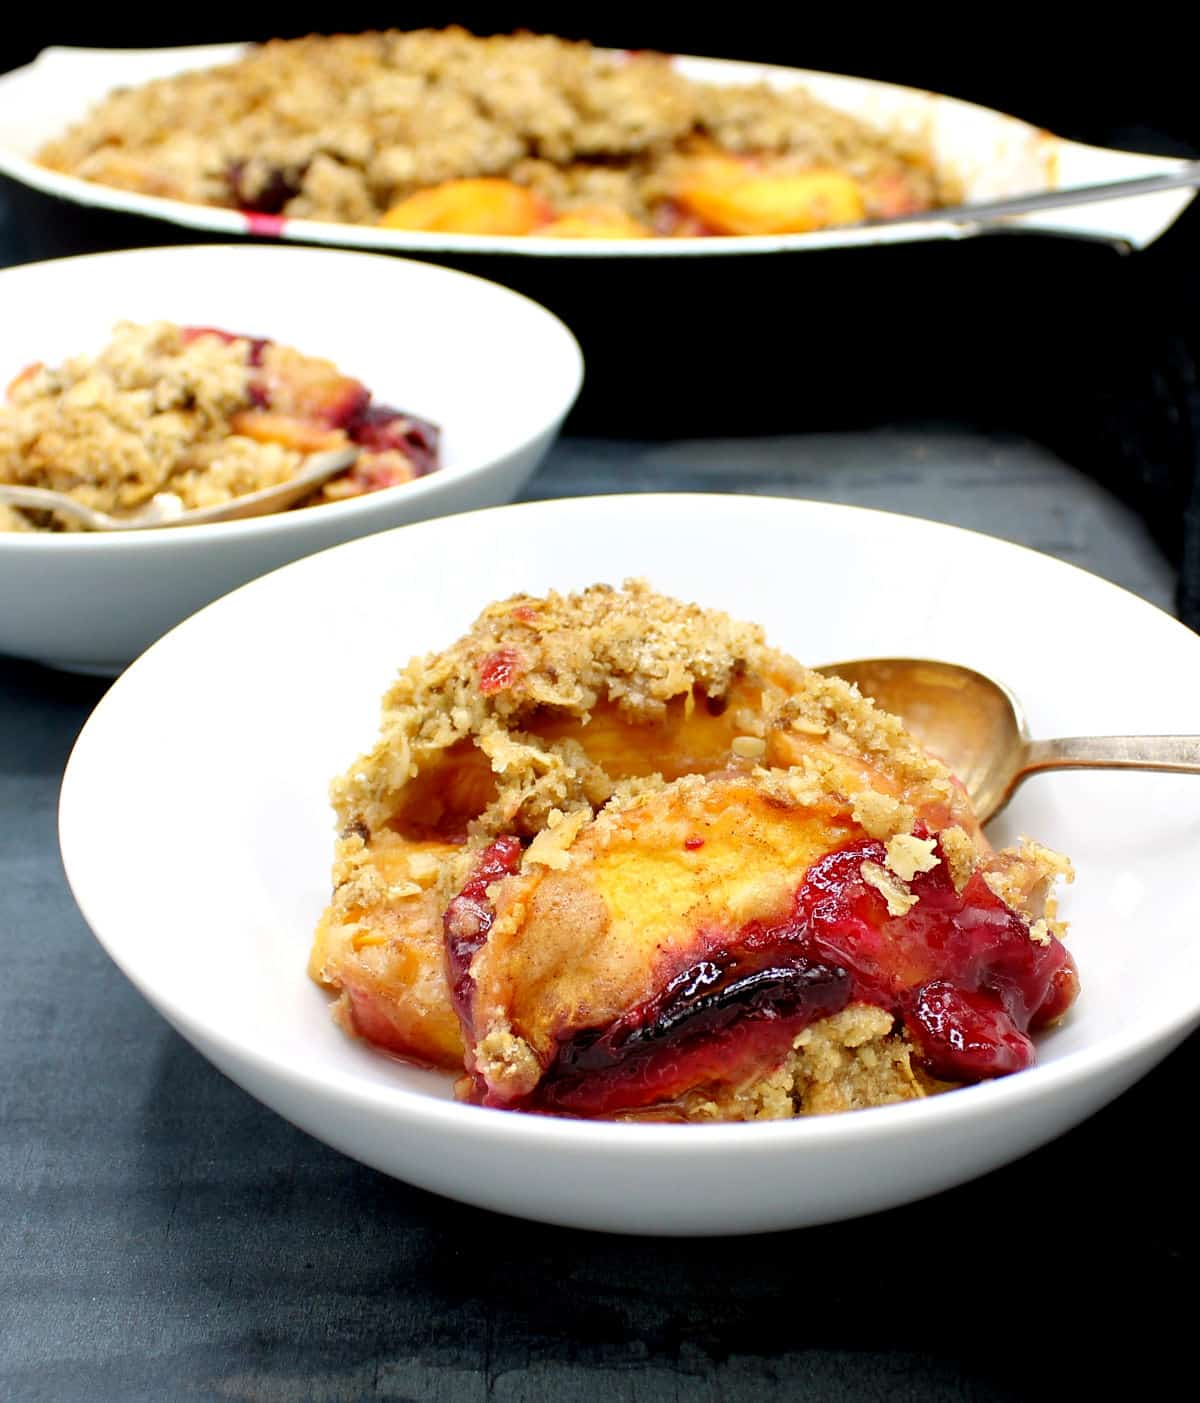 Closeup of a bowl of peach and plum fruit crisp with a spoon.